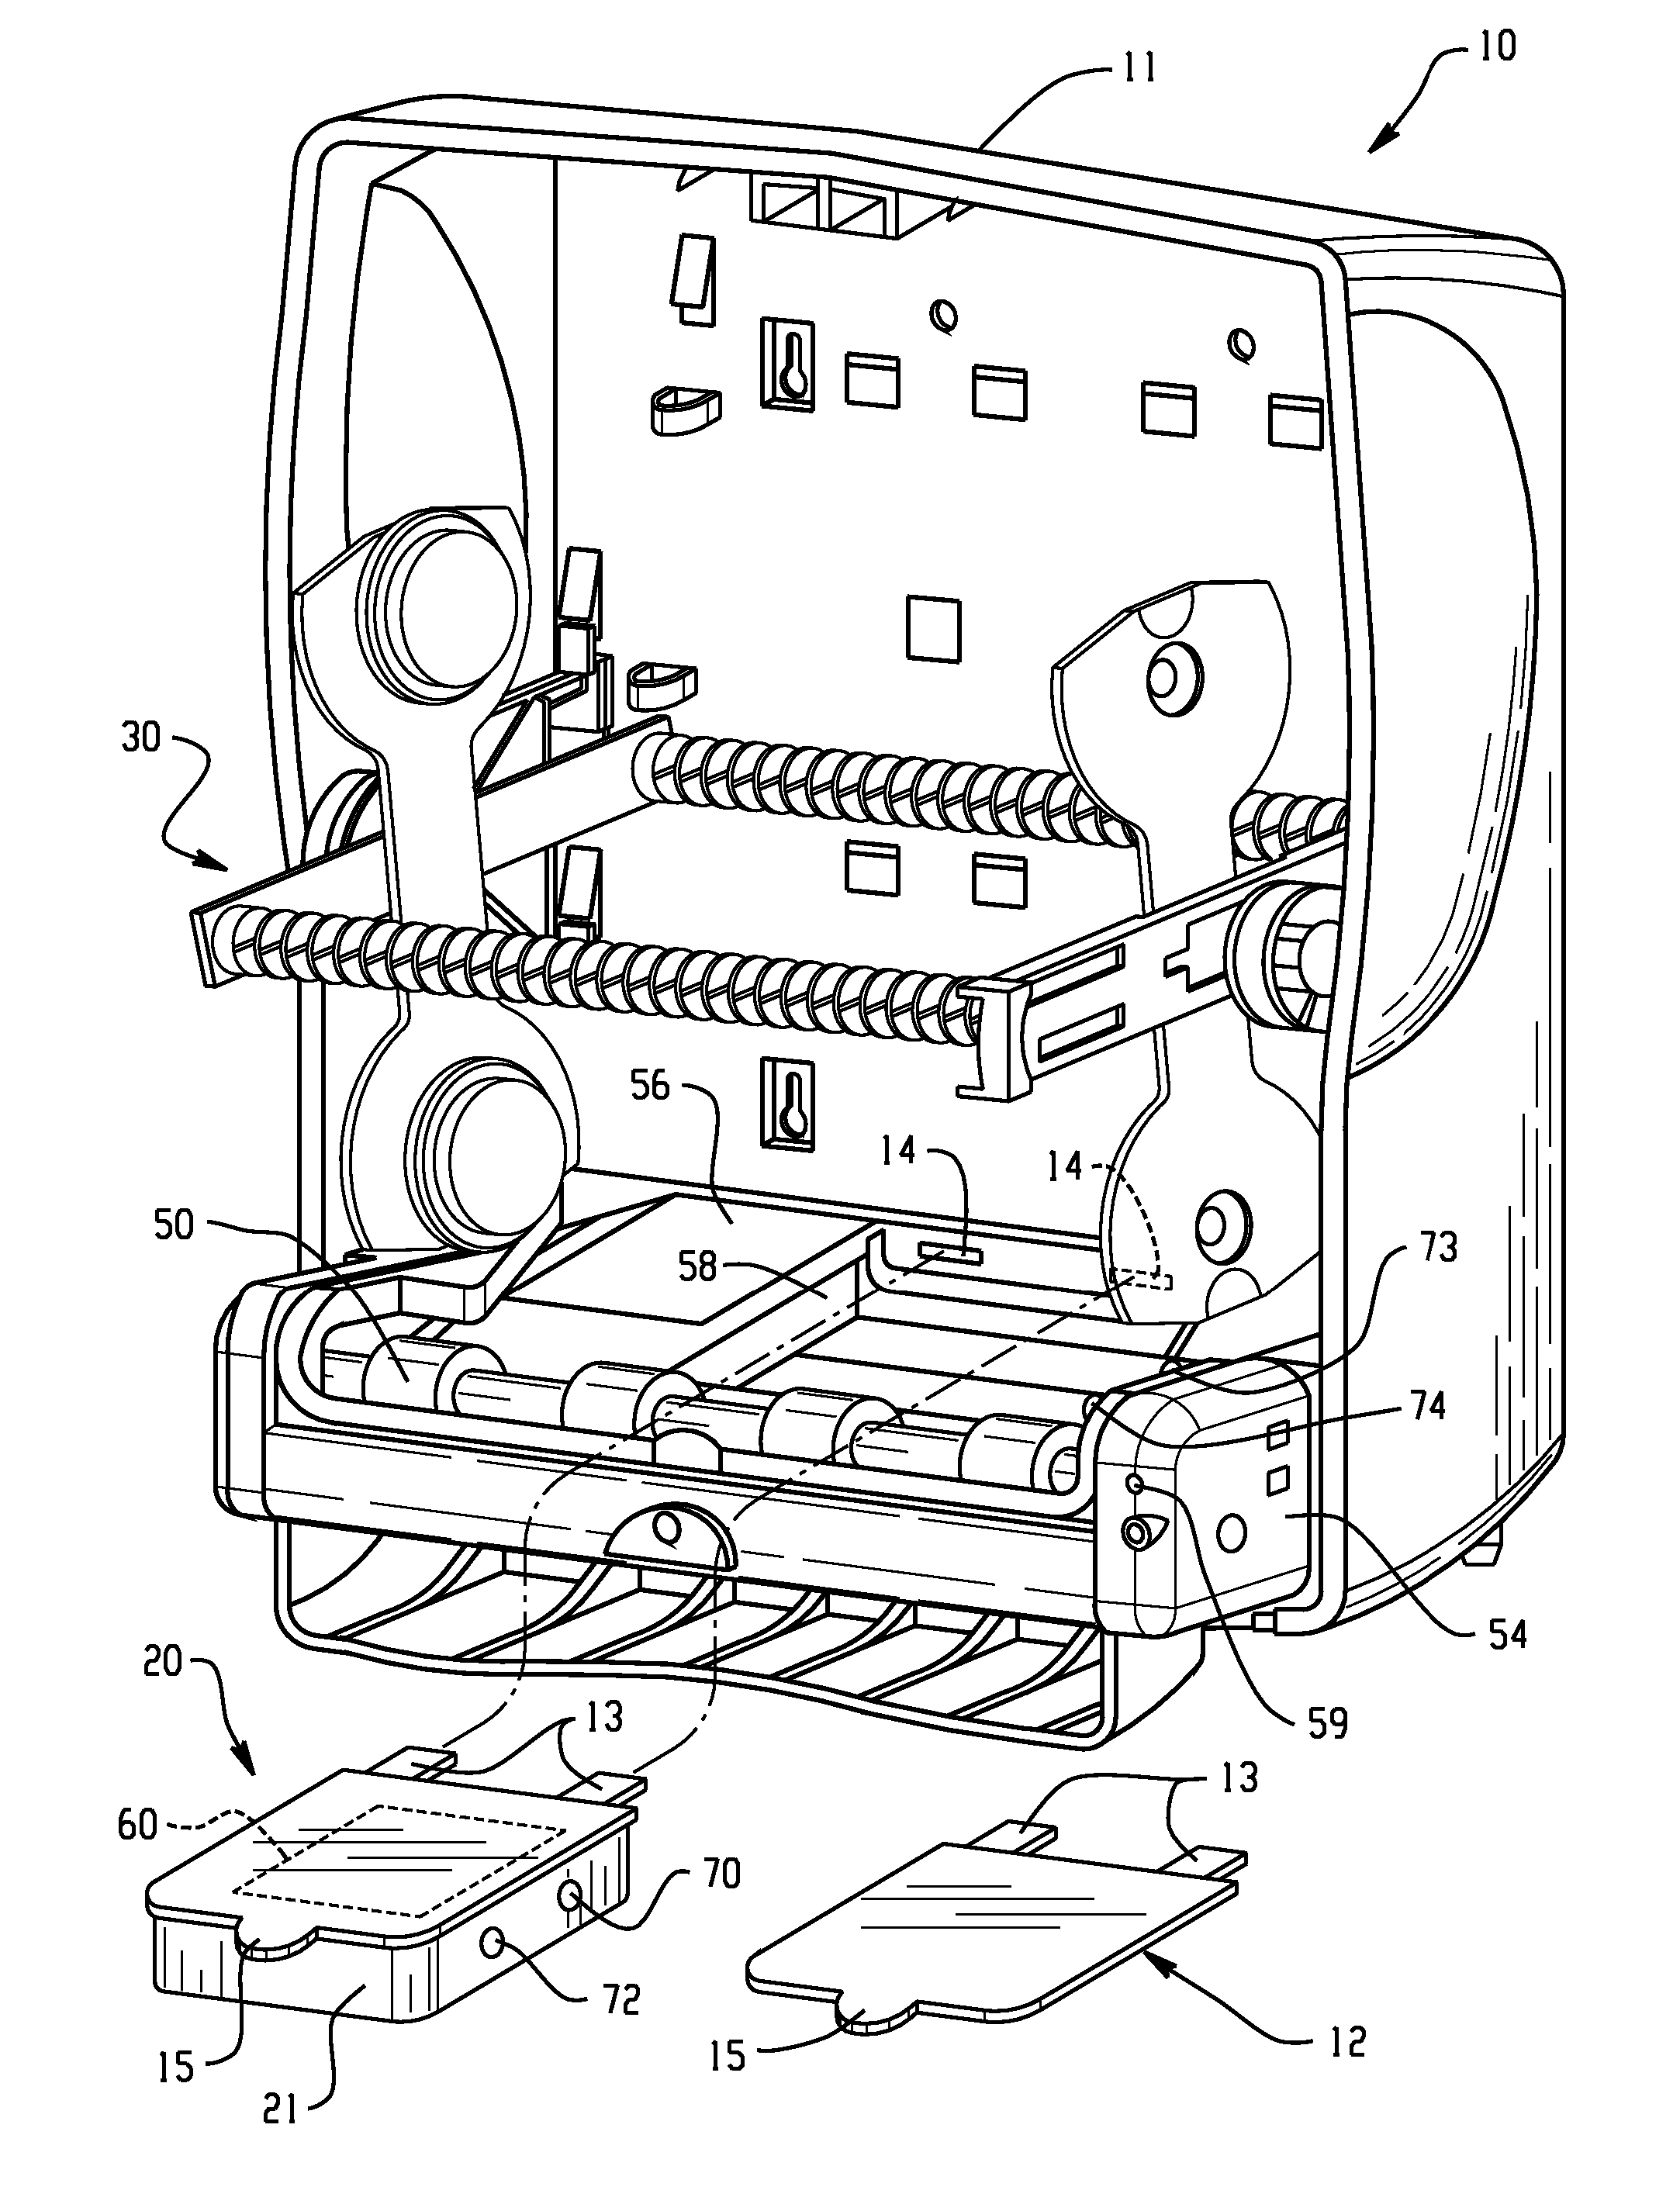 patent us7821155 power supply systems for dispensers and methods VDC Power Supply Rockwell Automation patent drawing